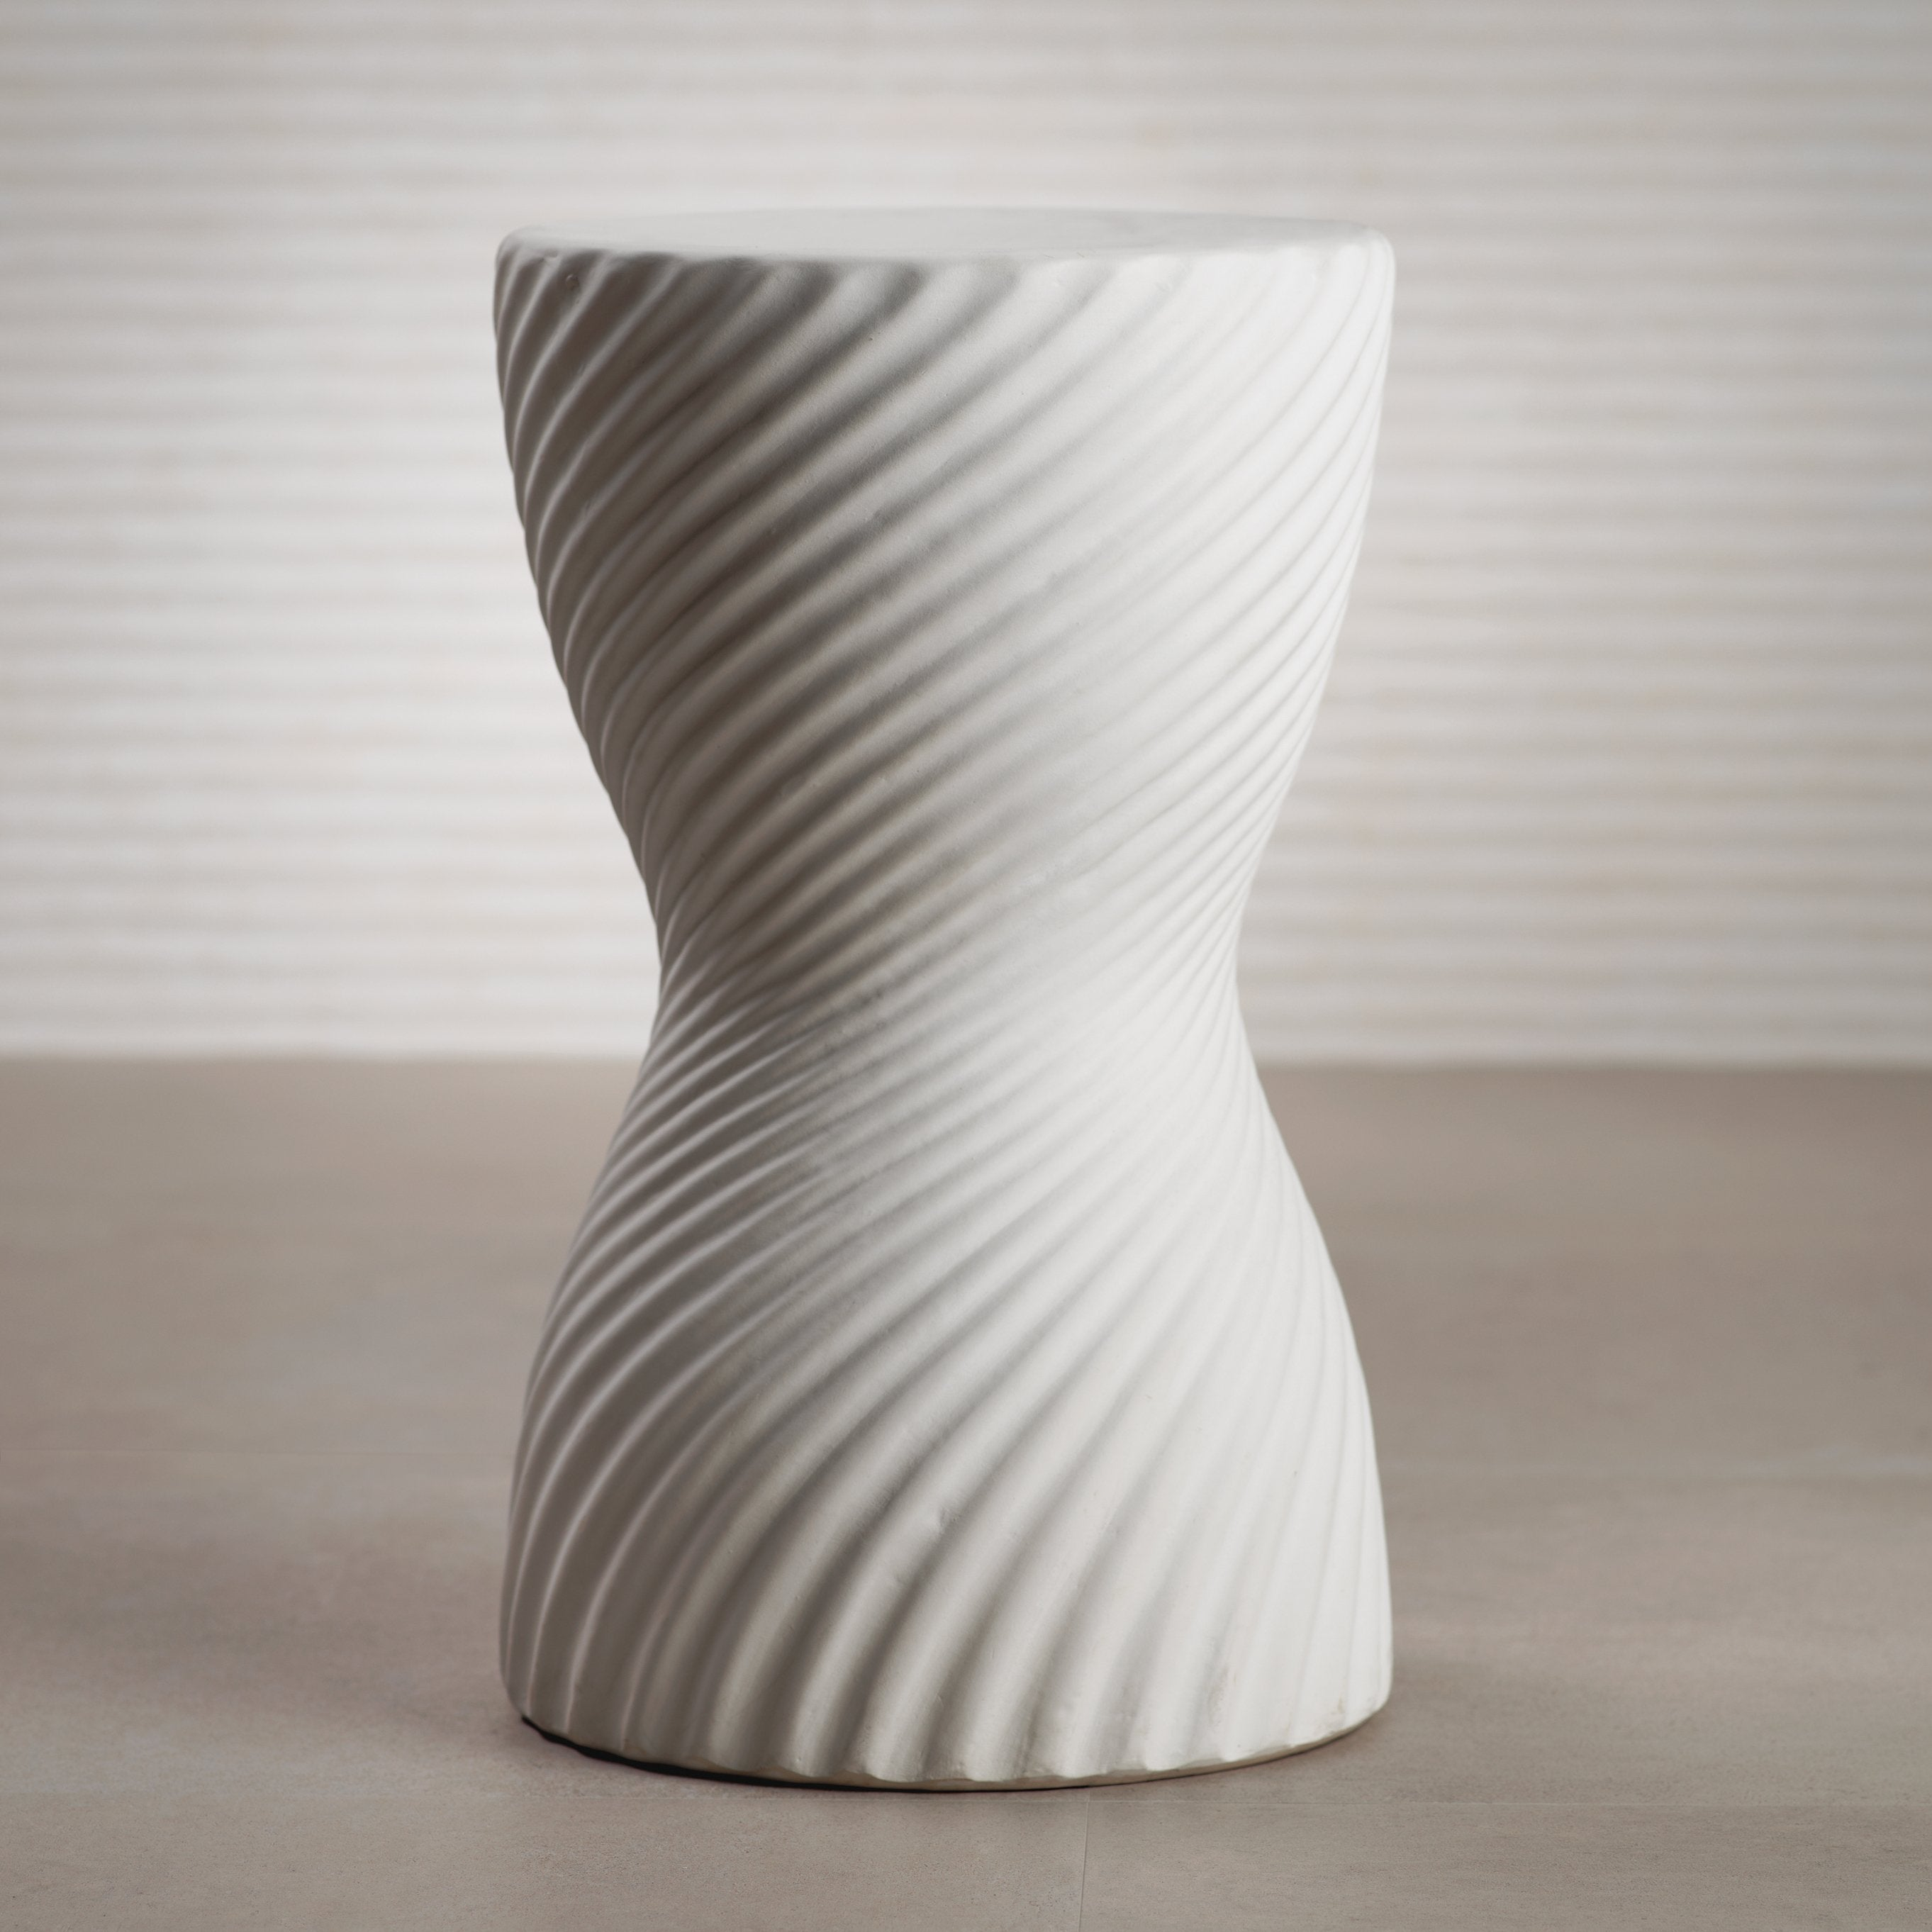 Twisted Ribbed Earthenware Stool - CARLYLE AVENUE